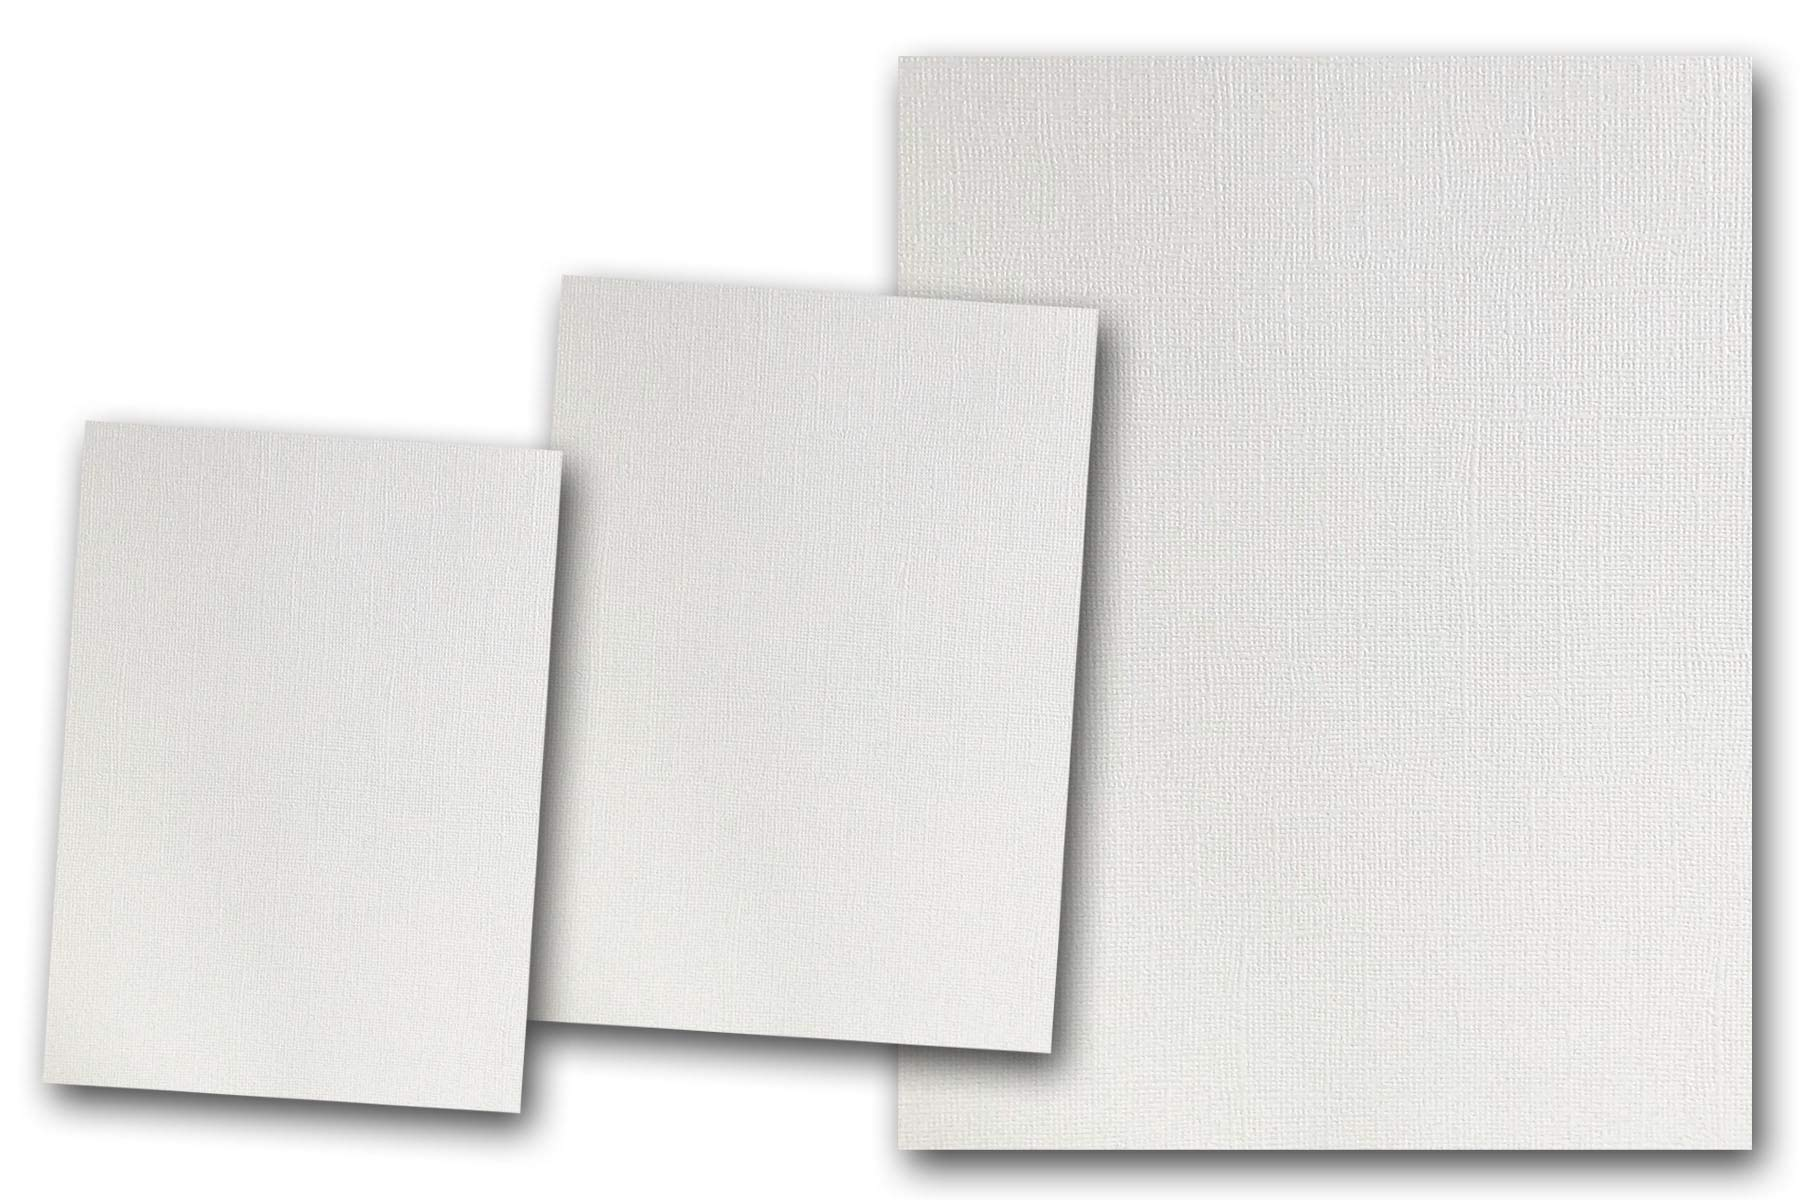 Premium Pearlized Metallic Textured Wedding Cake White Card Stock 80 Sheets - Matches Martha Stewart Wedding Cake - Great for Scrapbooking, Crafts, Flat Cards, DIY Projects, Etc. (5 x 7) by Discount Cardstock